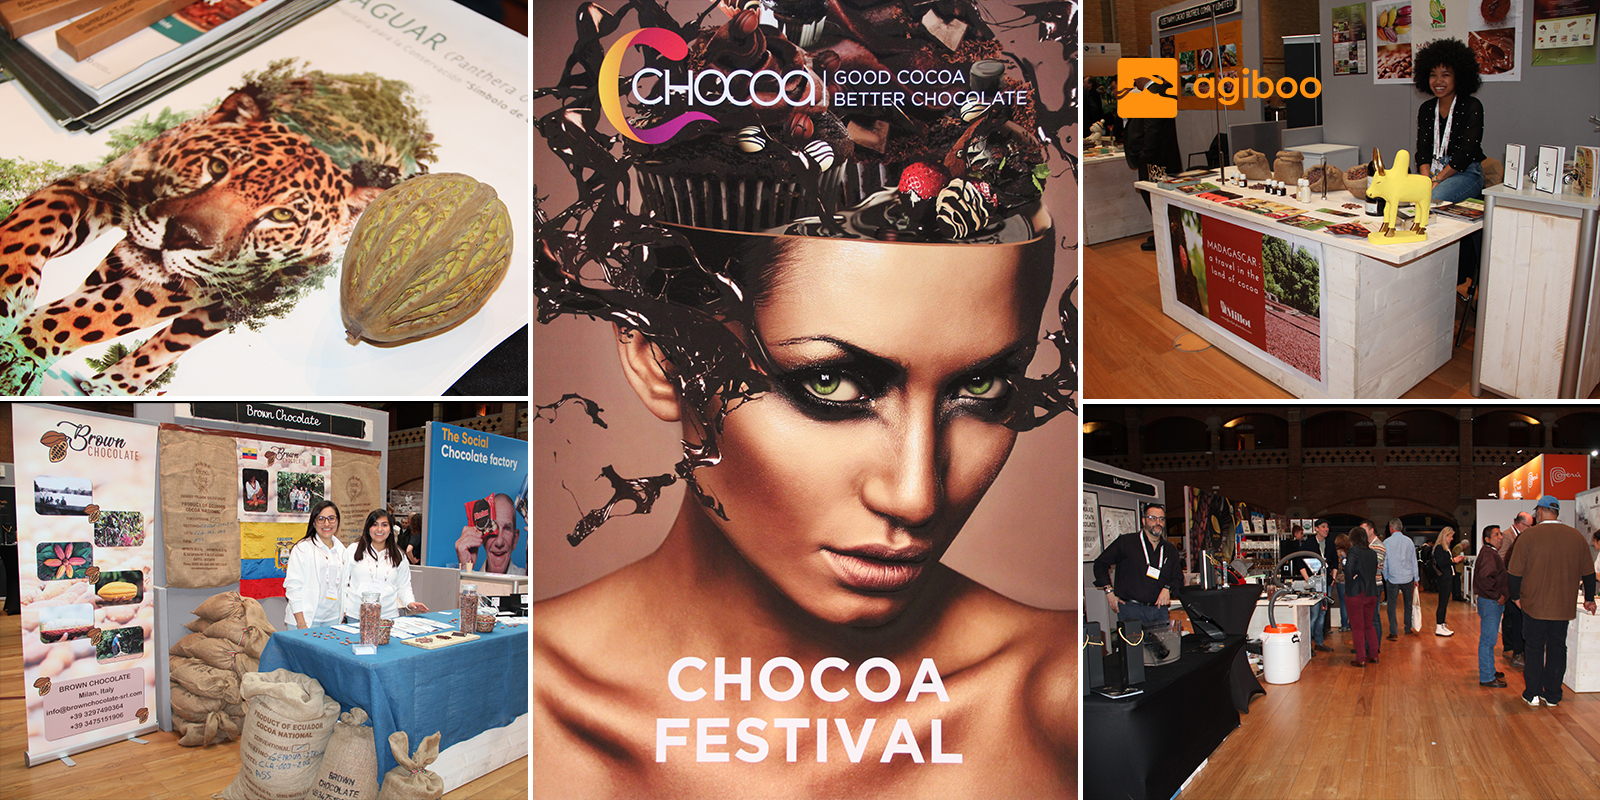 Collage of pictures about chocoa 2020 in Amsterdam